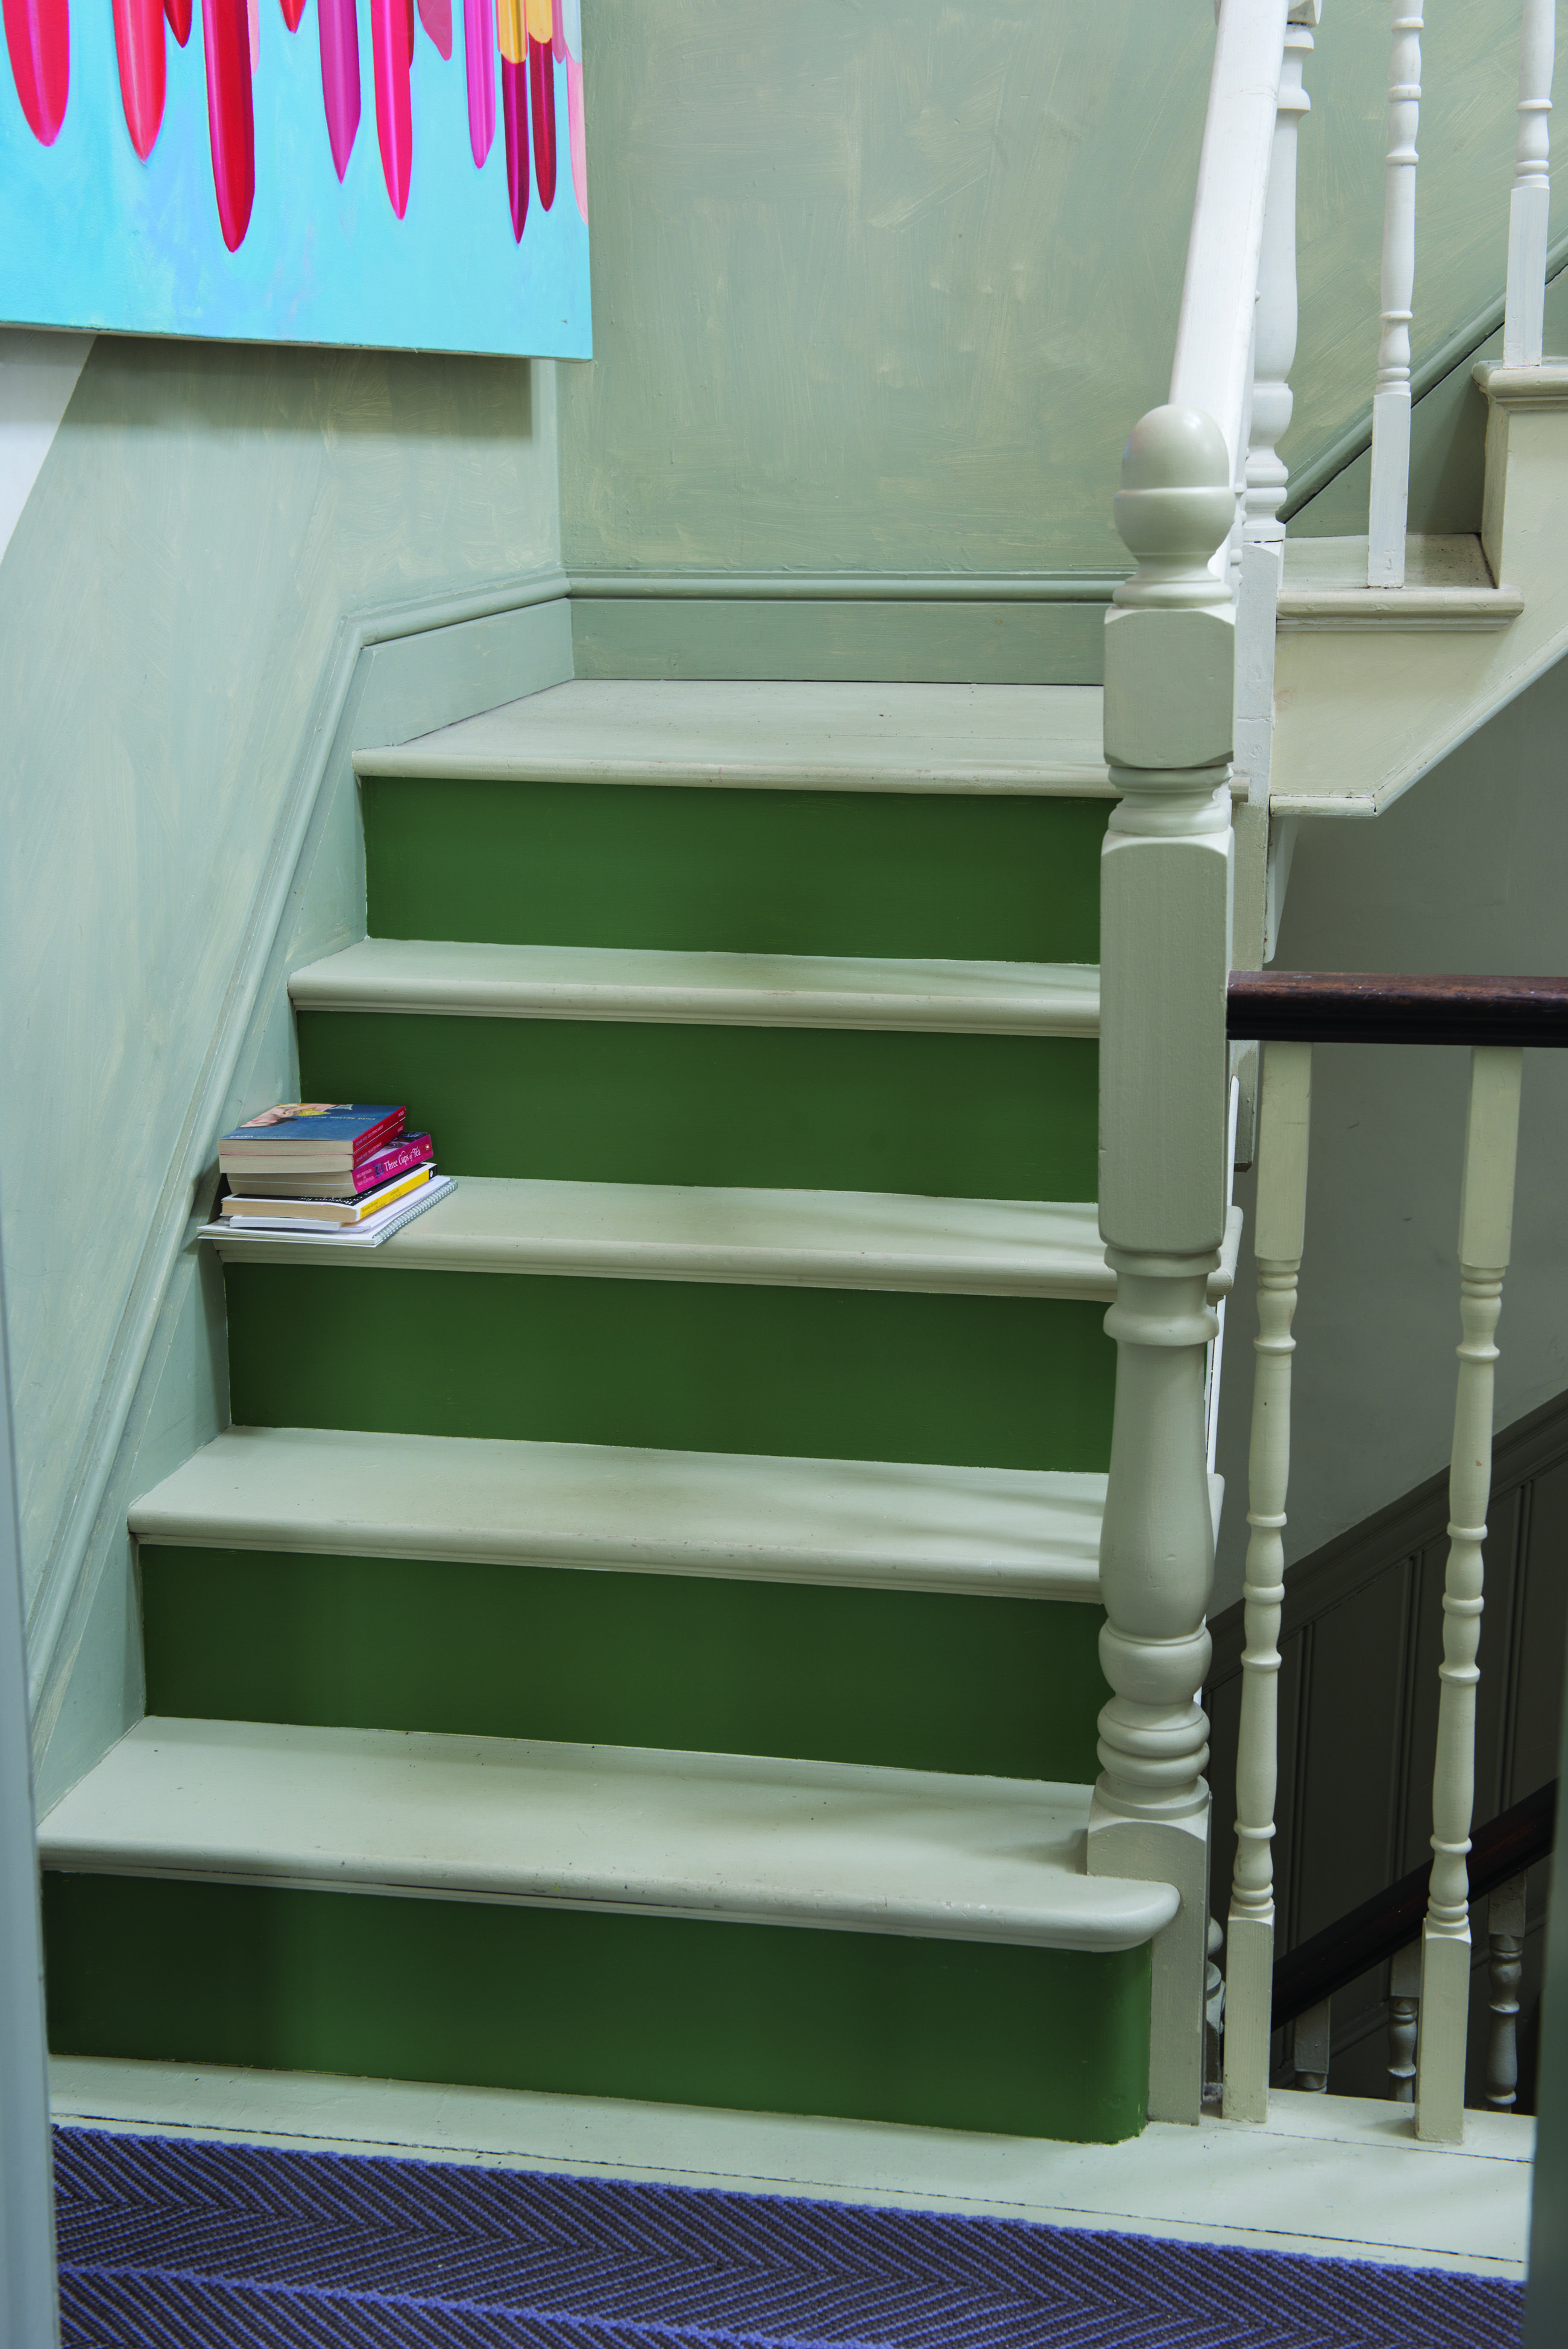 Stairs And Steps In Off White Floor Paint And Calke Green